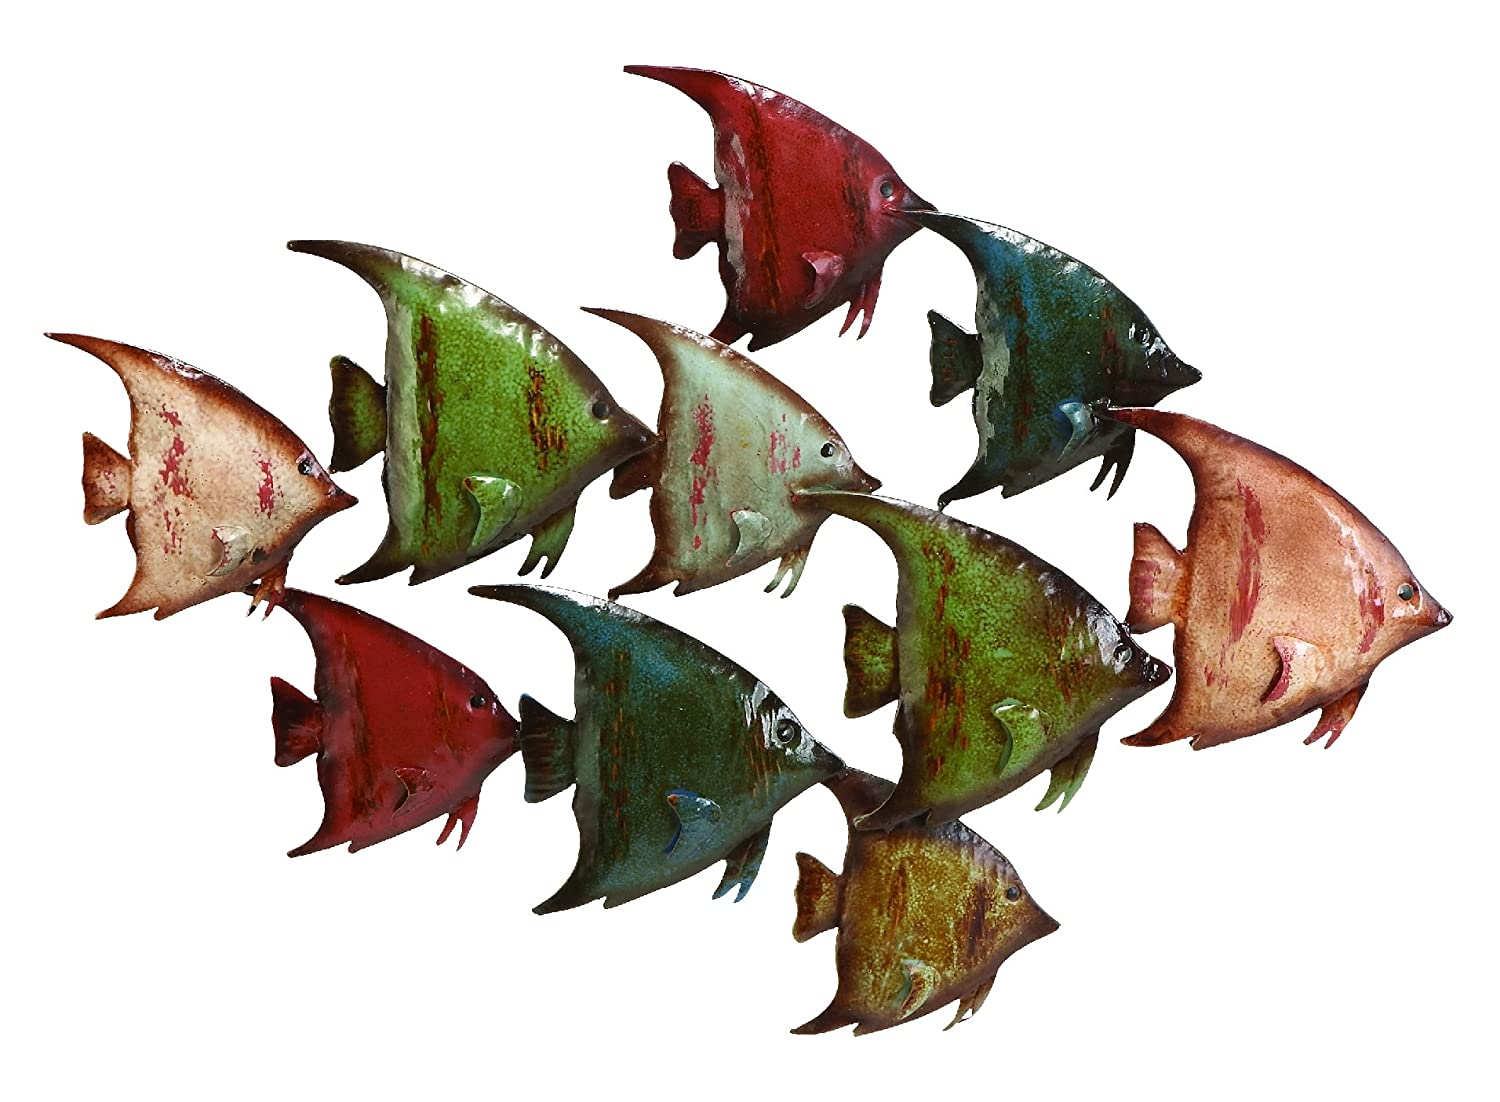 Fresh Amazon.com: Deco 79 63533 Metal Fish Wall Decor: Home & Kitchen CG33